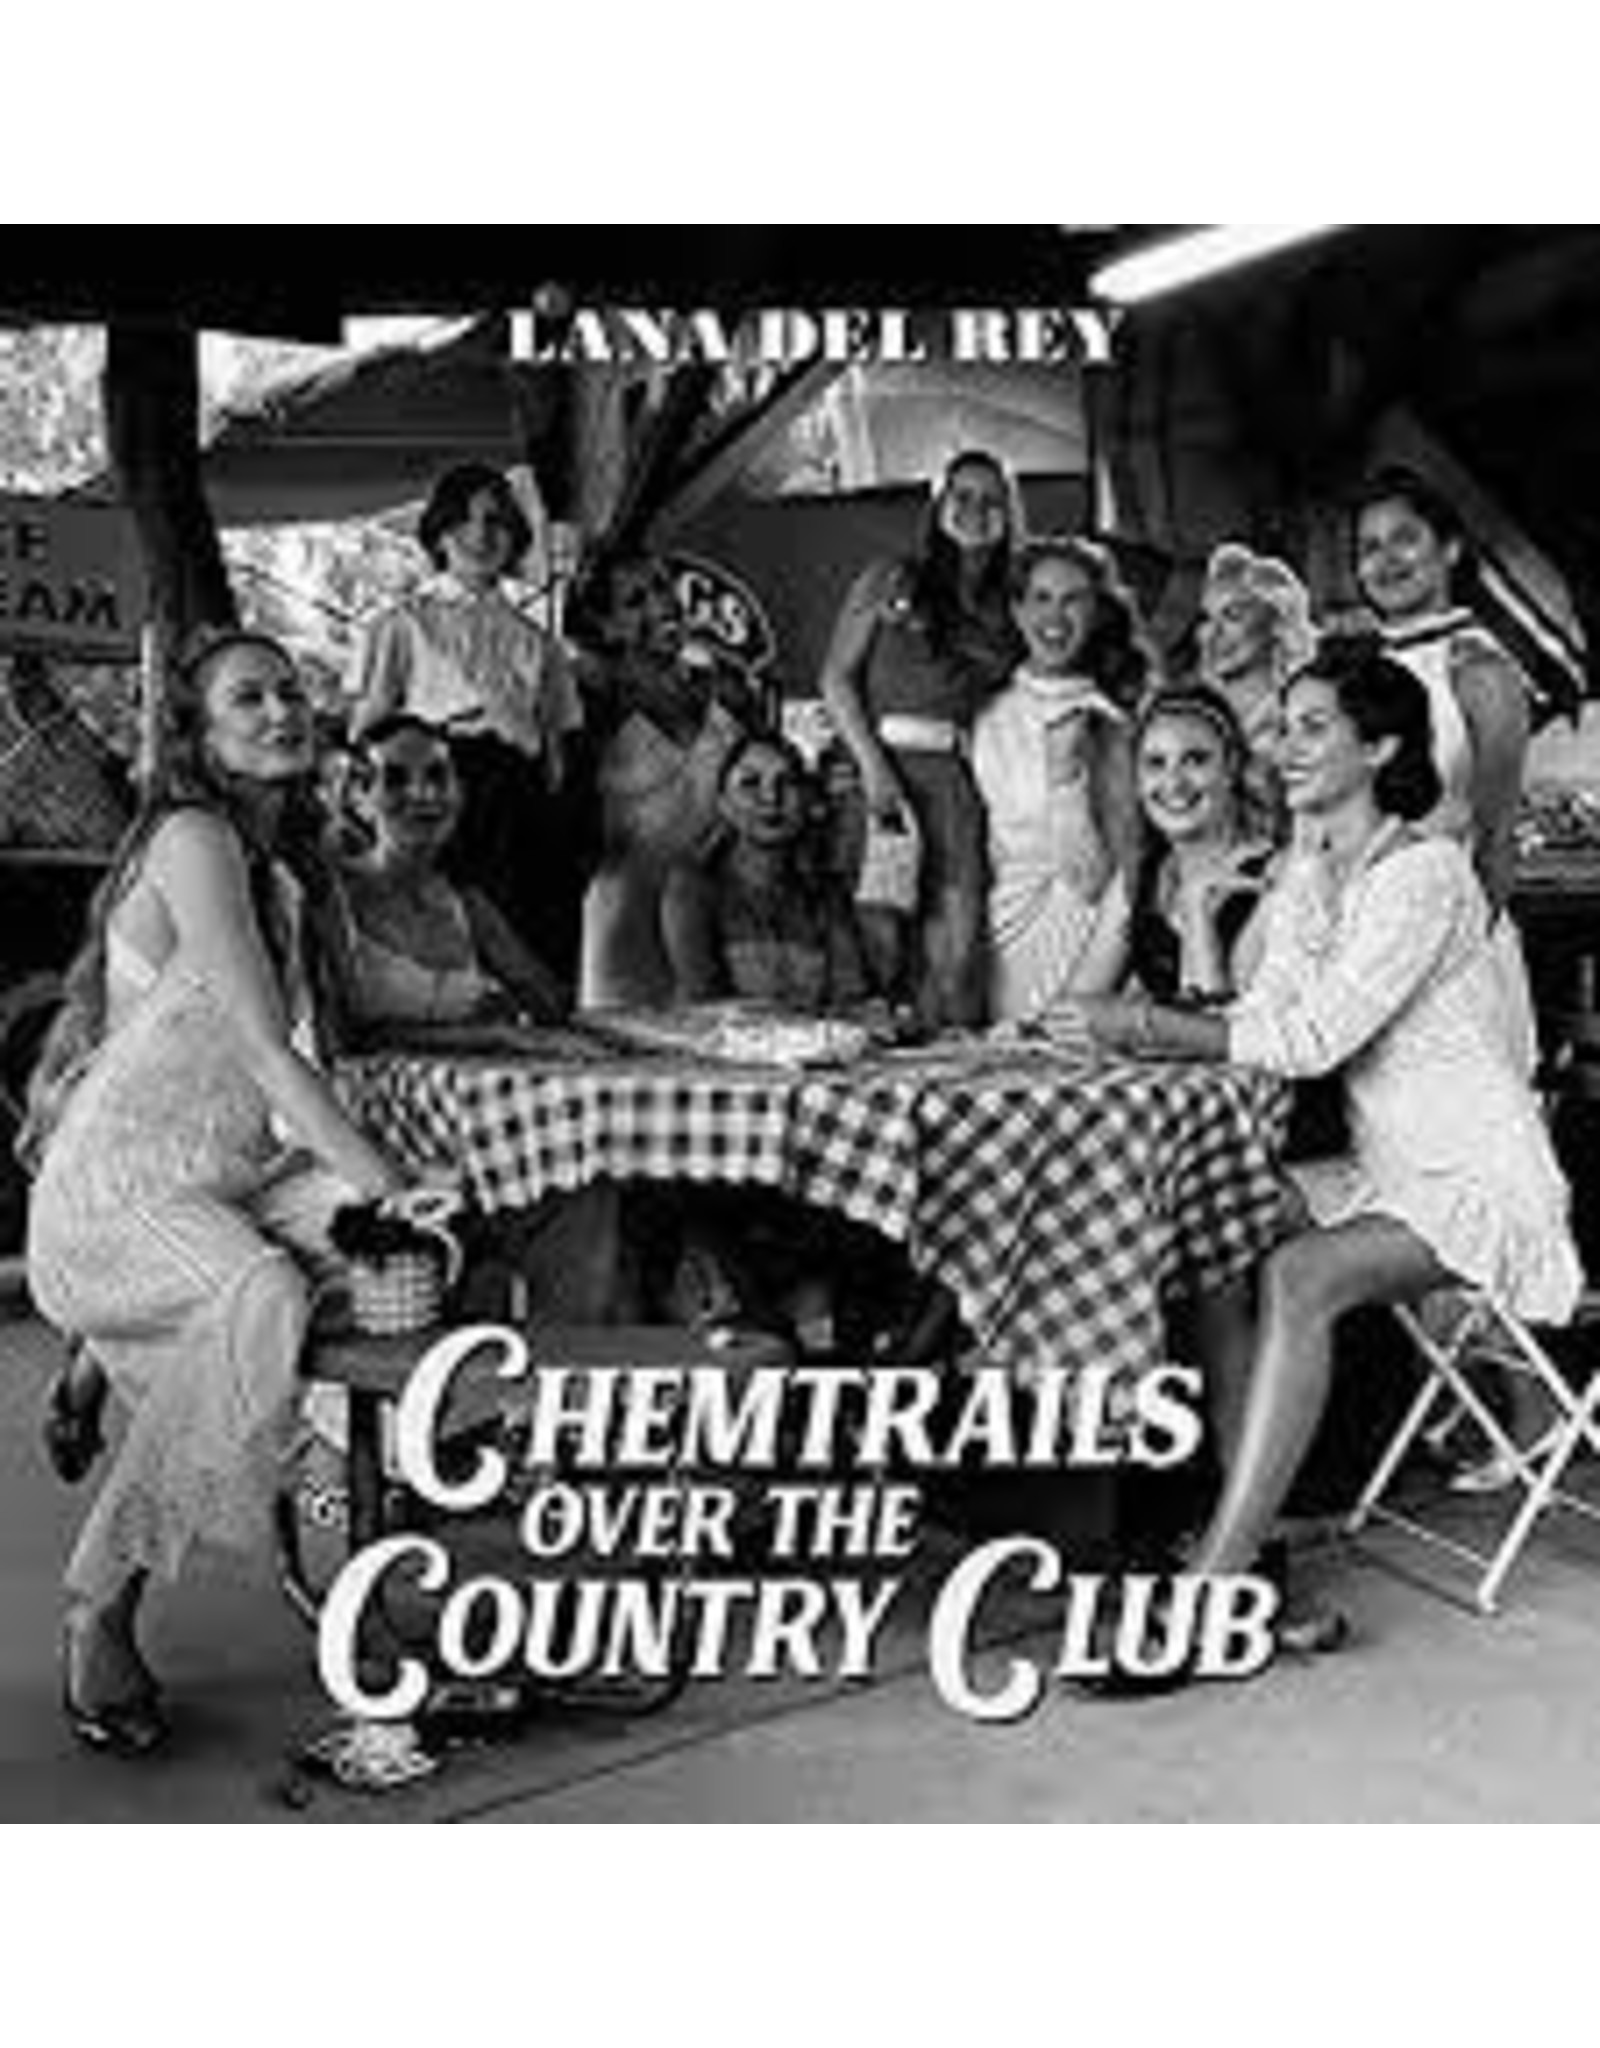 Del Rey, Lana - Chemtrails Over The Country Club CD